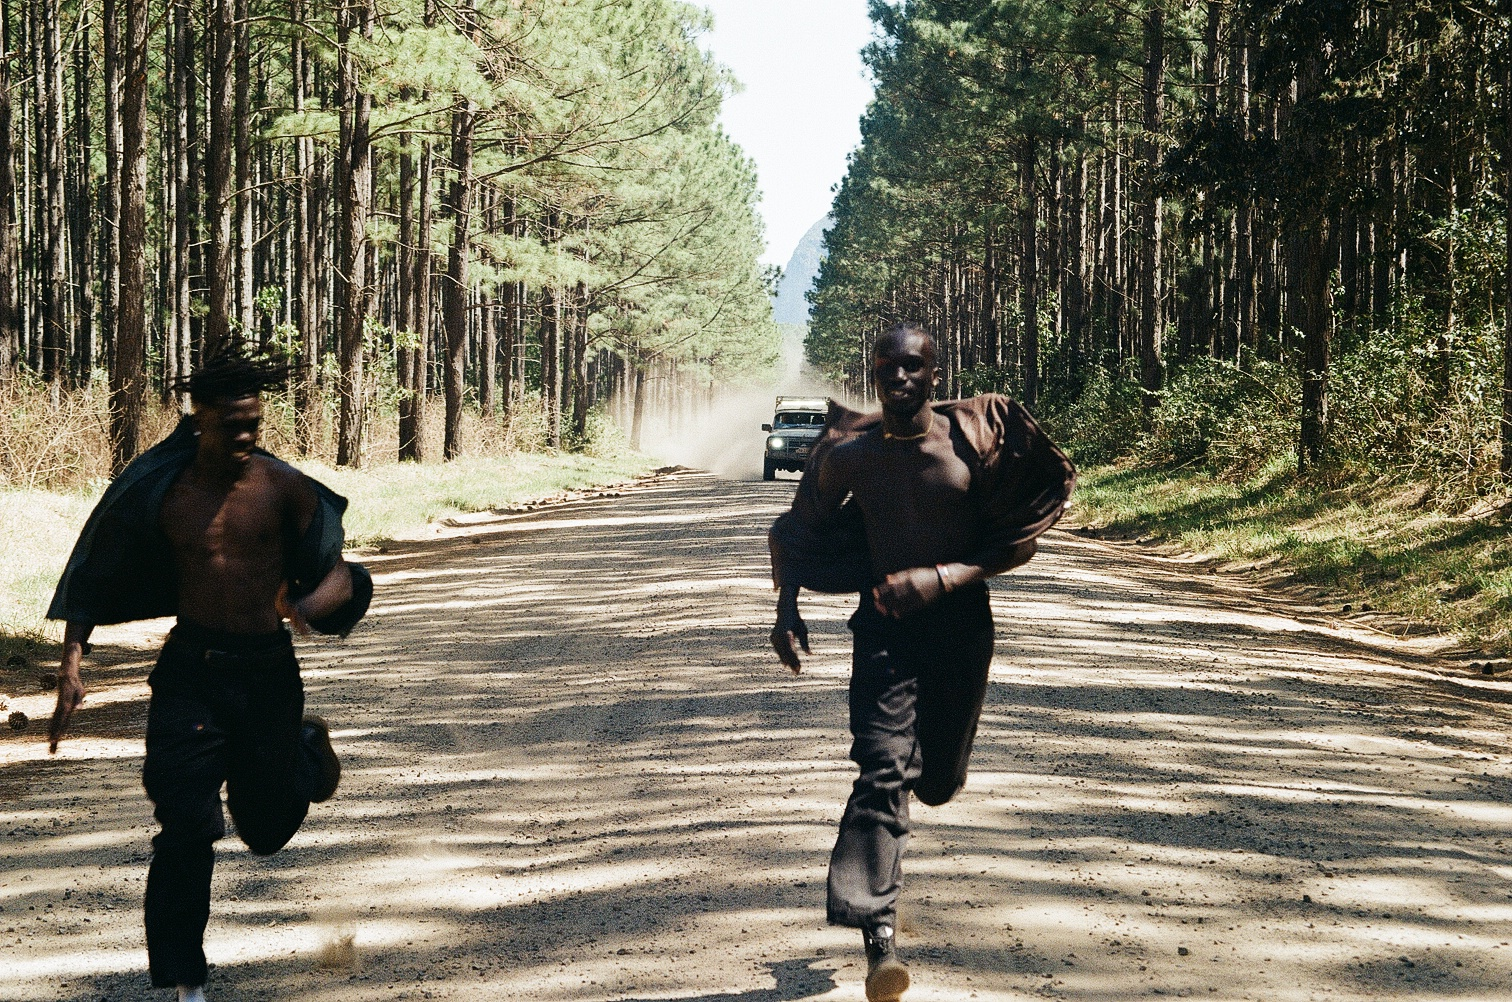 Two boys running in front of a car along a road lined with trees.